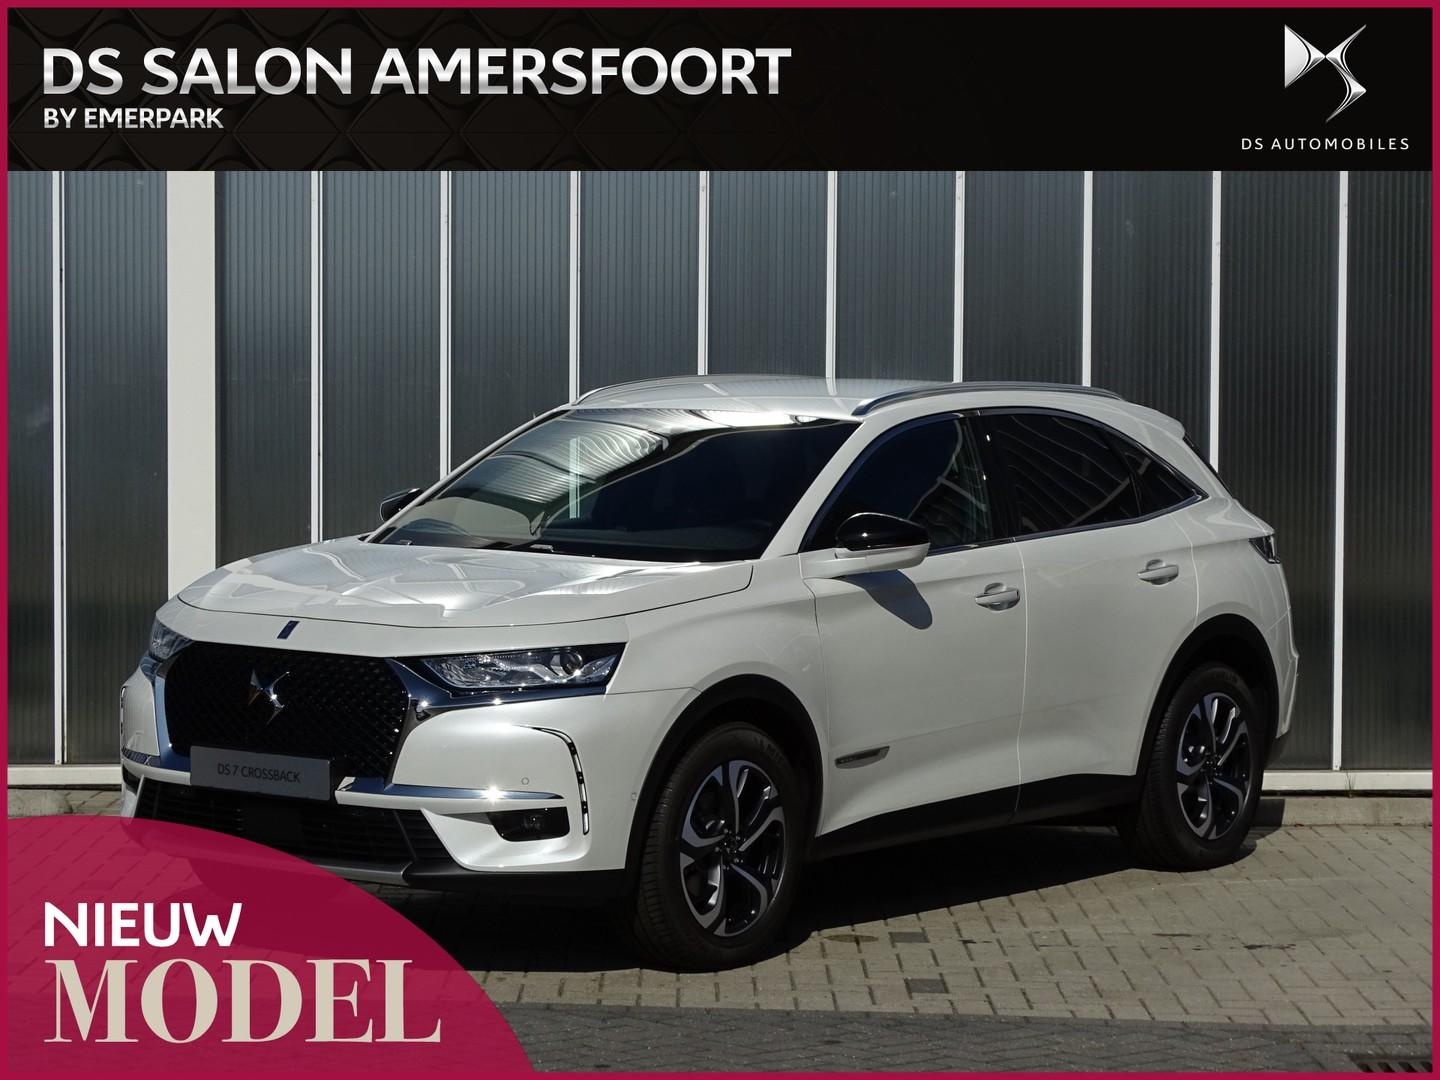 Ds 7 crossback 1.2 puretech 130 be chic rivoli basalte leder advanced safety pack